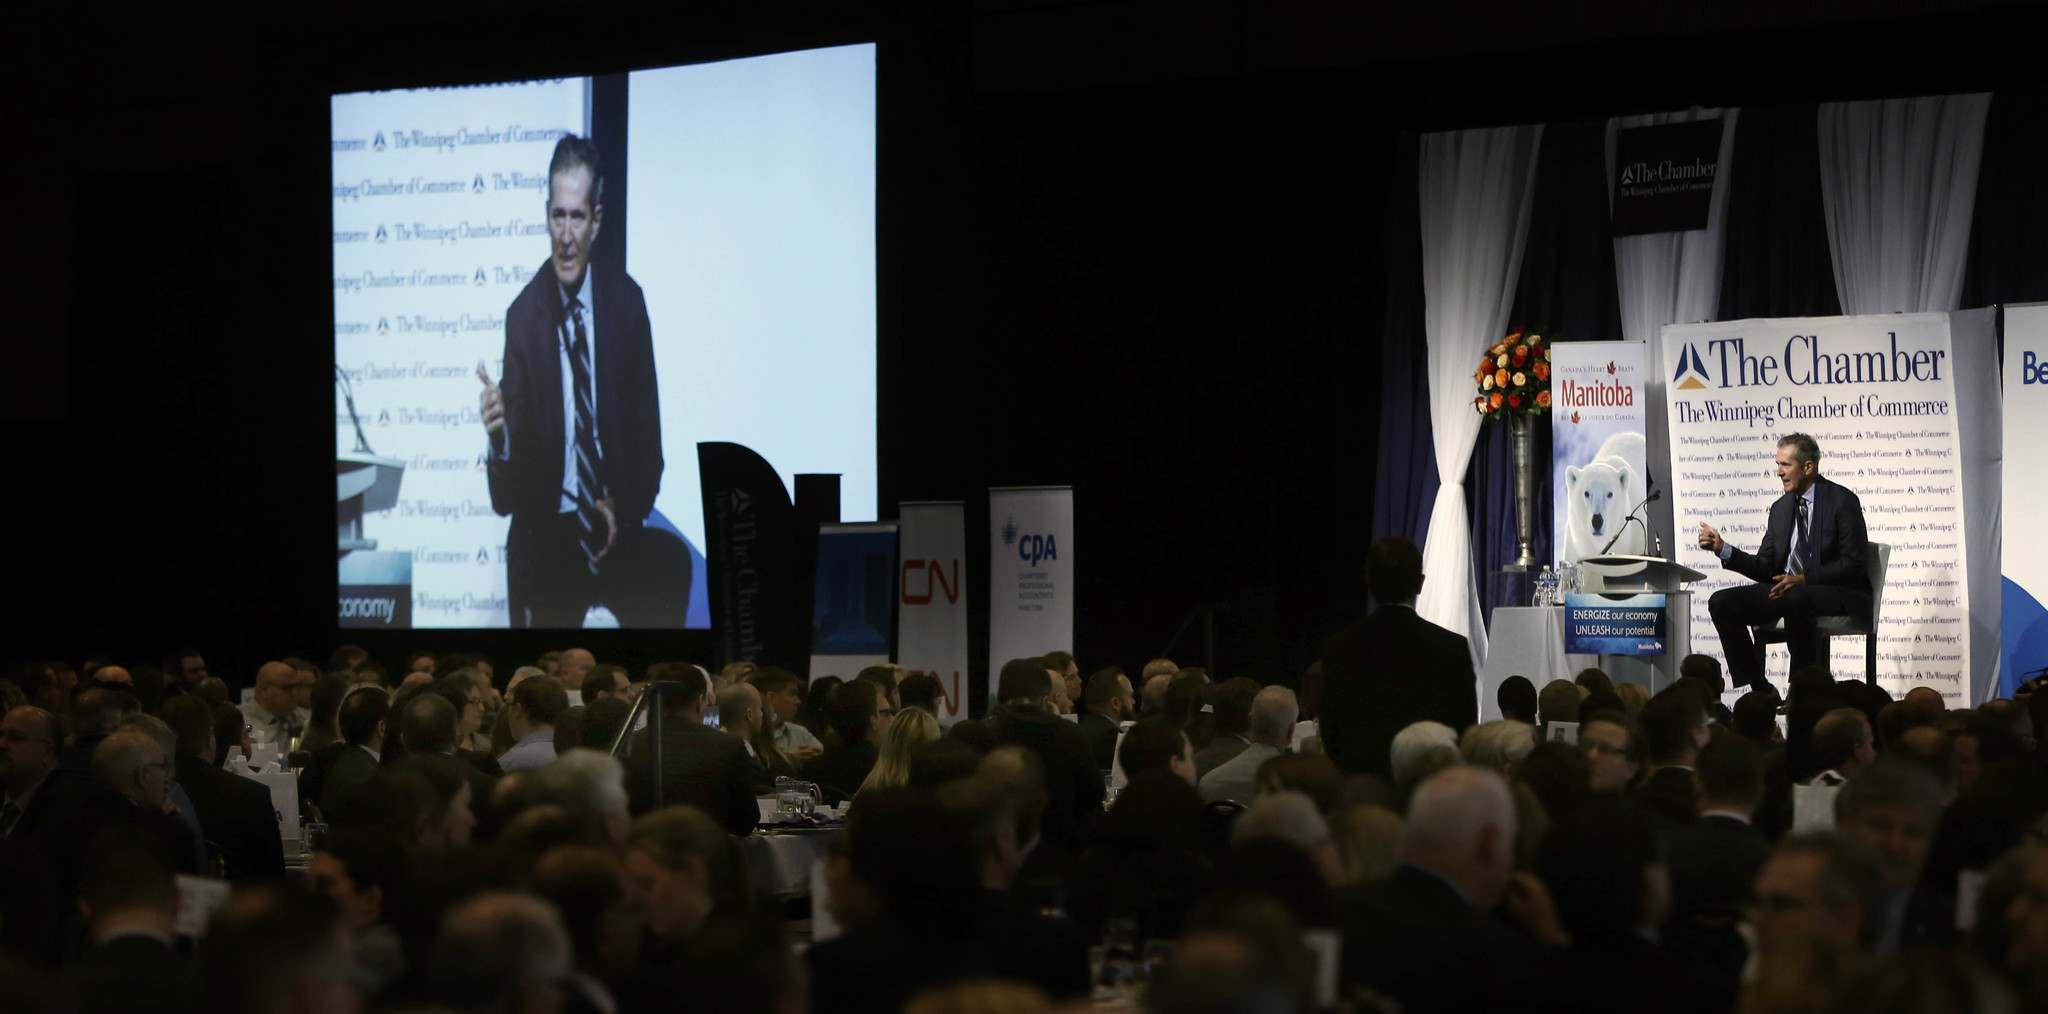 WAYNE GLOWACKI / WINNIPEG FREE PRESS</p><p>Premier Brian Pallister delivers his &#8216;State of the Province&rsquo; at the Winnipeg Chamber of Commerce luncheon in the RBC Convention Centre Thursday.</p>